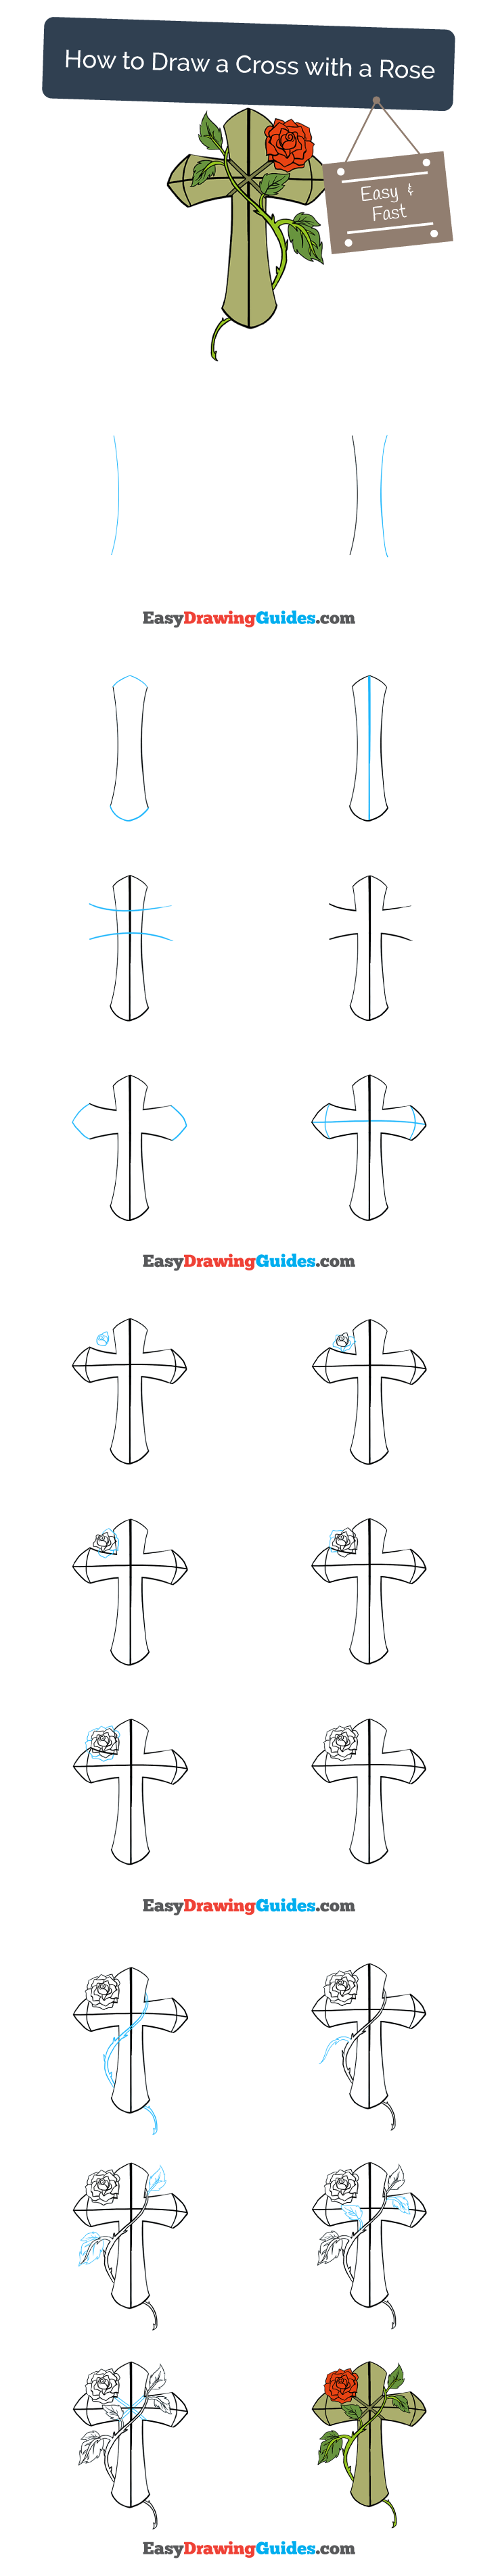 How To Draw A Cross Step By Step : cross, Cross, Drawing, Guides, Tutorial,, Tutorials, Beginners,